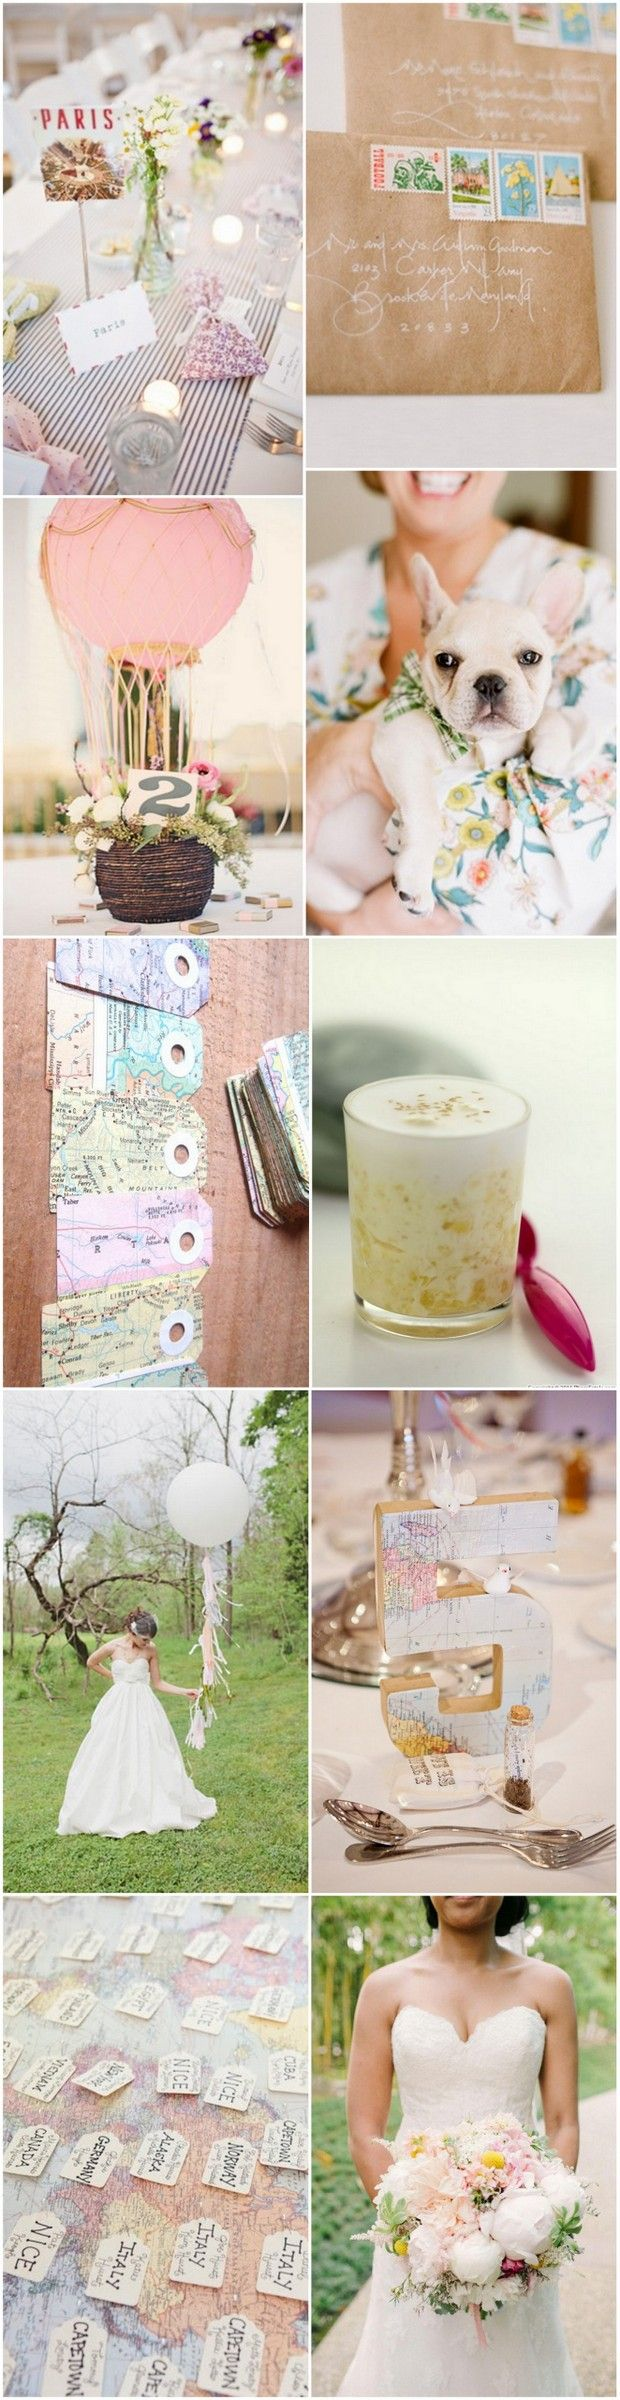 Dreamy Destination & Travel Themed Wedding Inspiration | weddingsonline